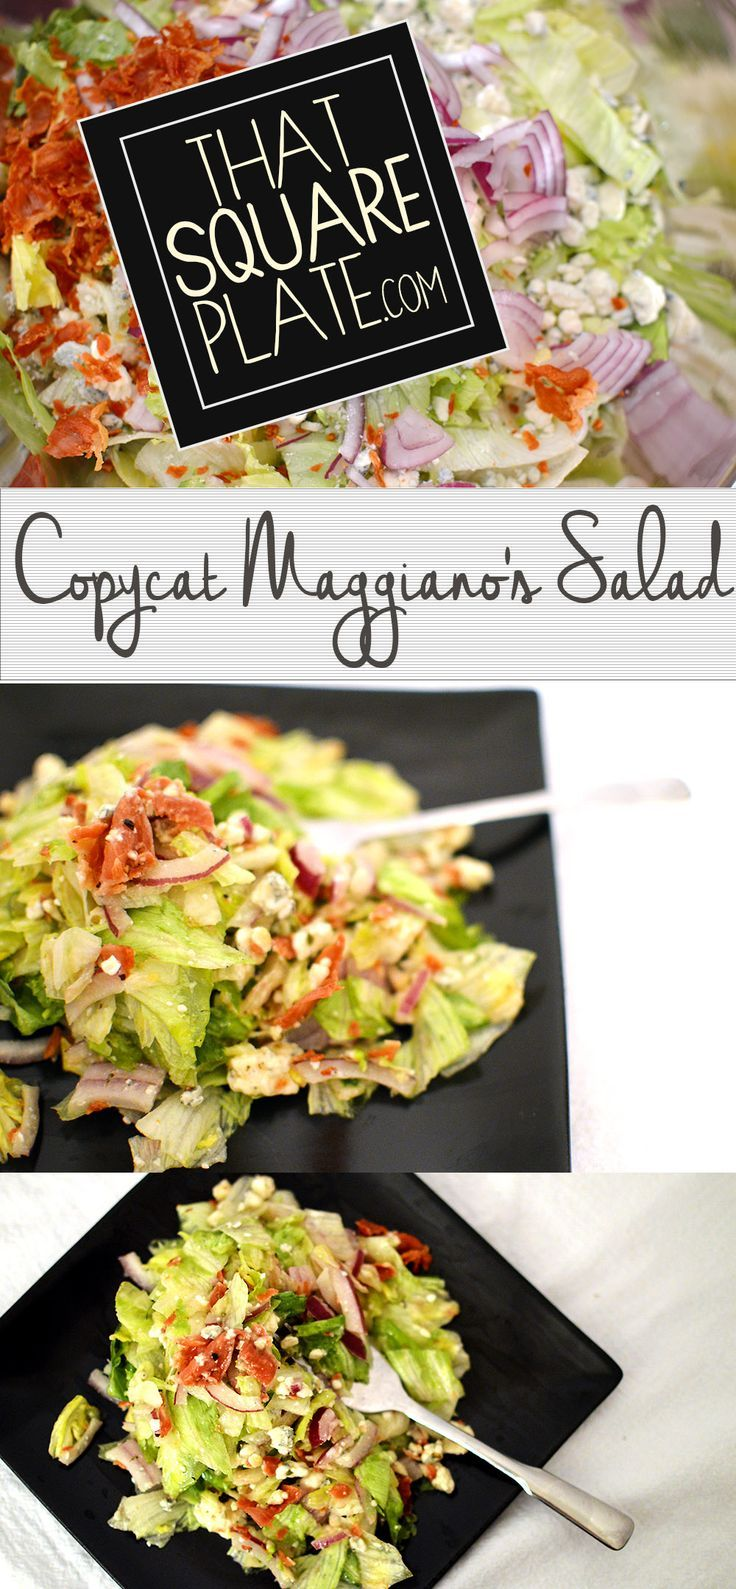 Inspired from joyineveryseason.com, this copycat Maggiano's salad combines salty prosciutto, gorgonzola cheese, red onion, chopped lettuce and homemade Italian dressing. It's everything that makes you happy! From thatsquareplate.com.